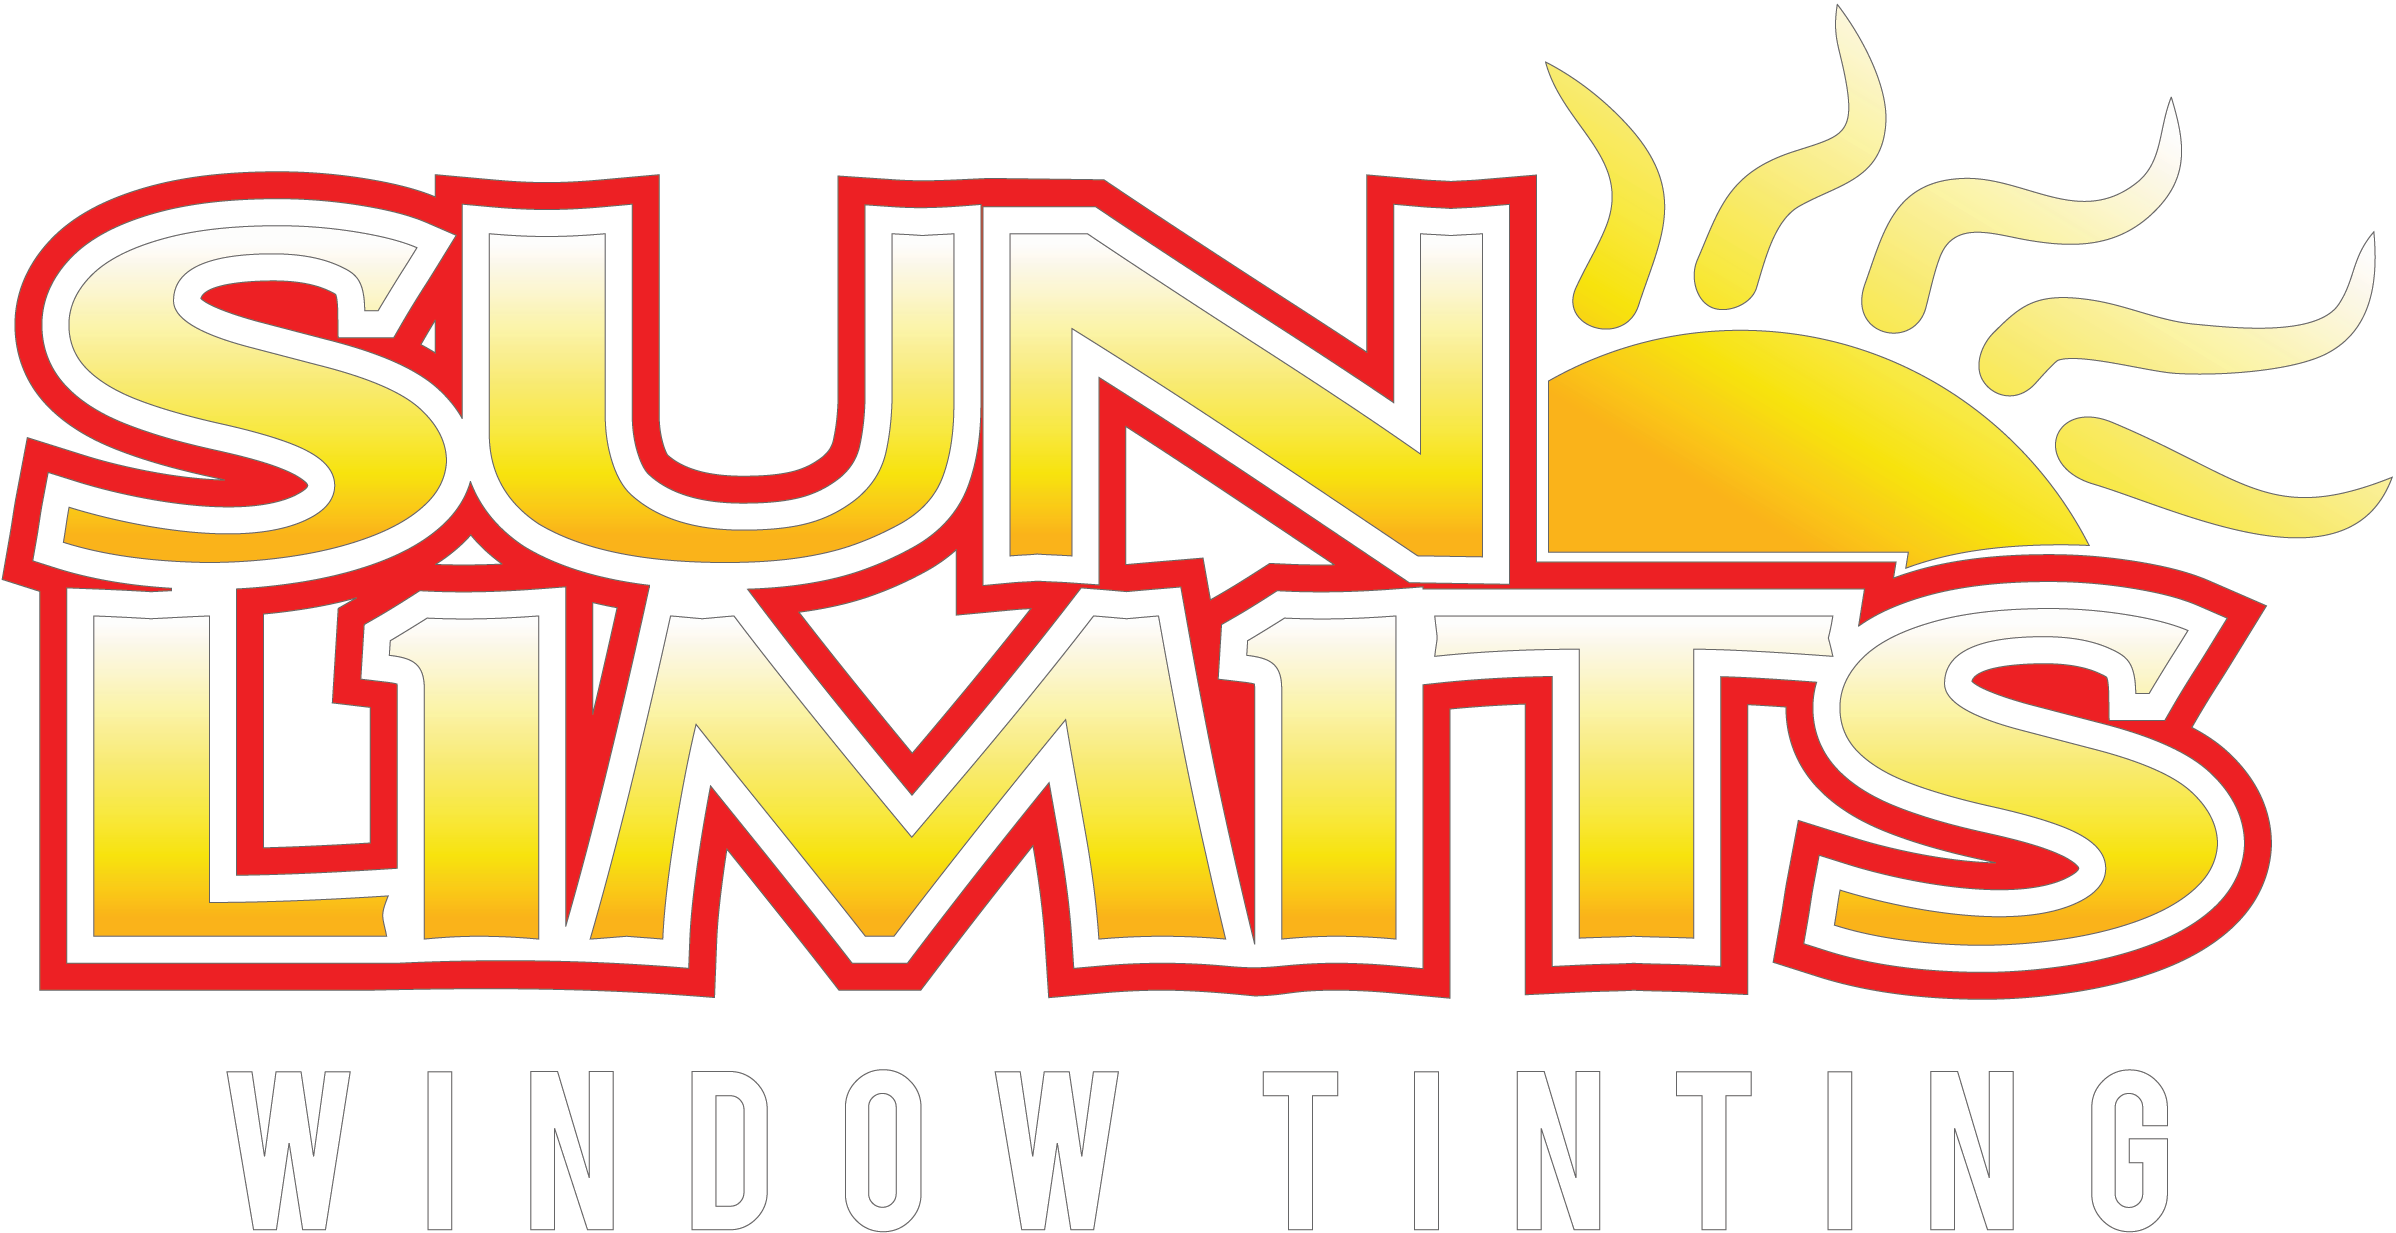 Sun Limits Window Tinting - # 1 for Residential & Commercial Window Tinting in the Harrisburg & Lancaster, Pennsylvania Area